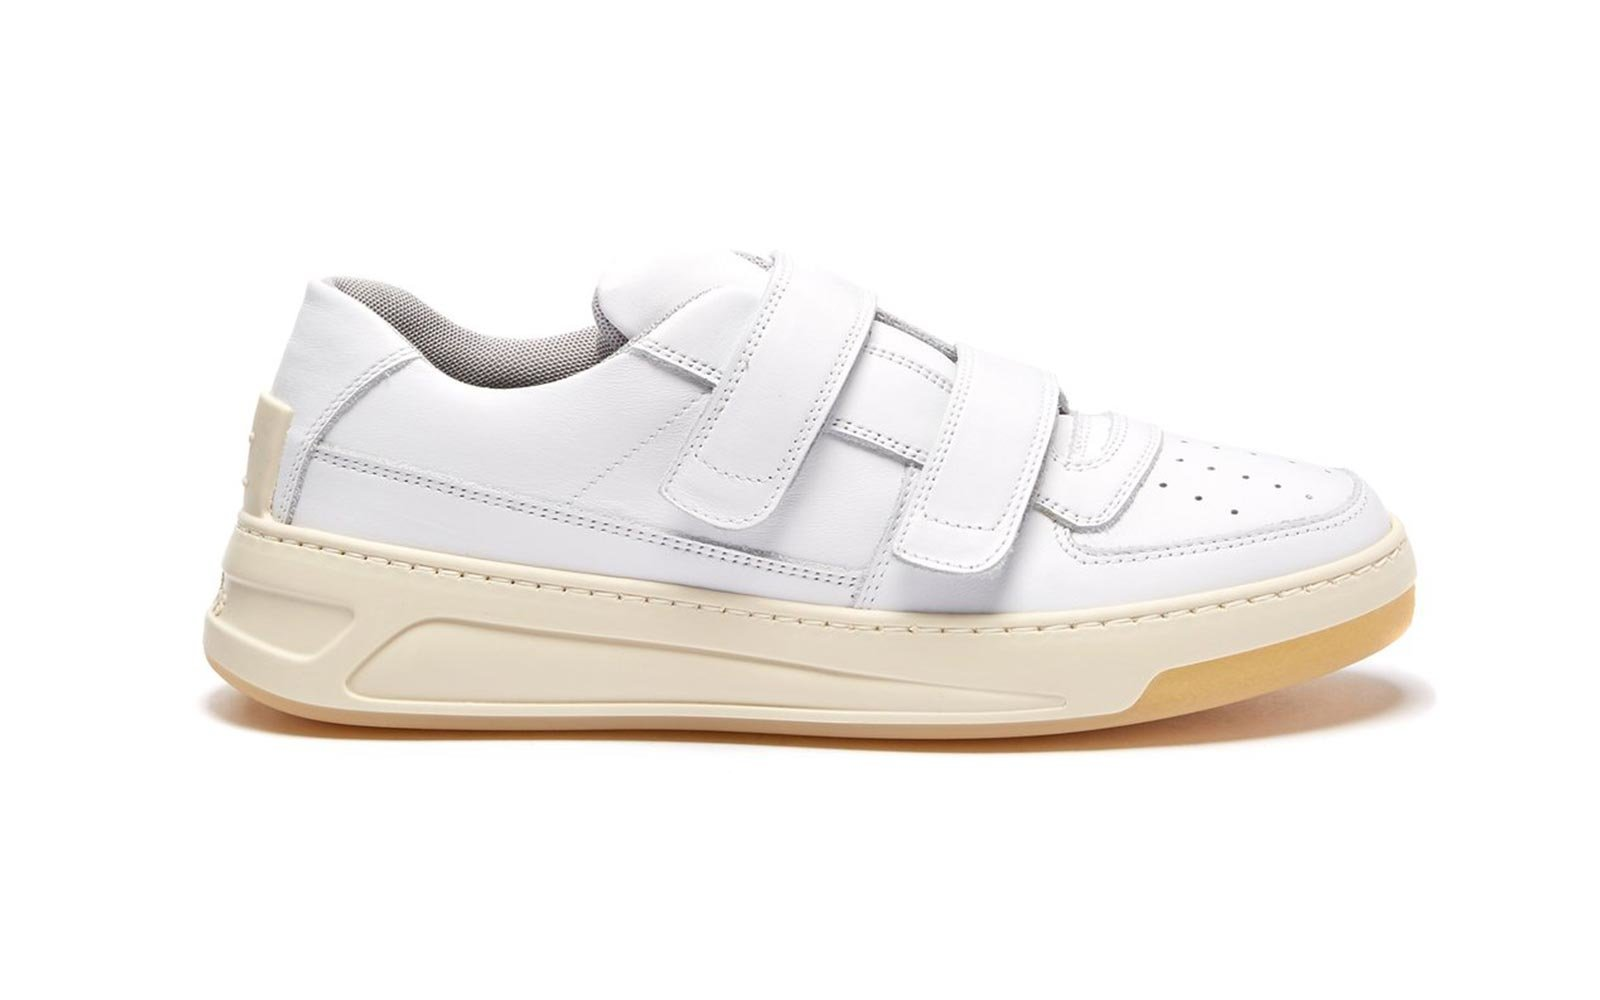 Acne leather sneakers